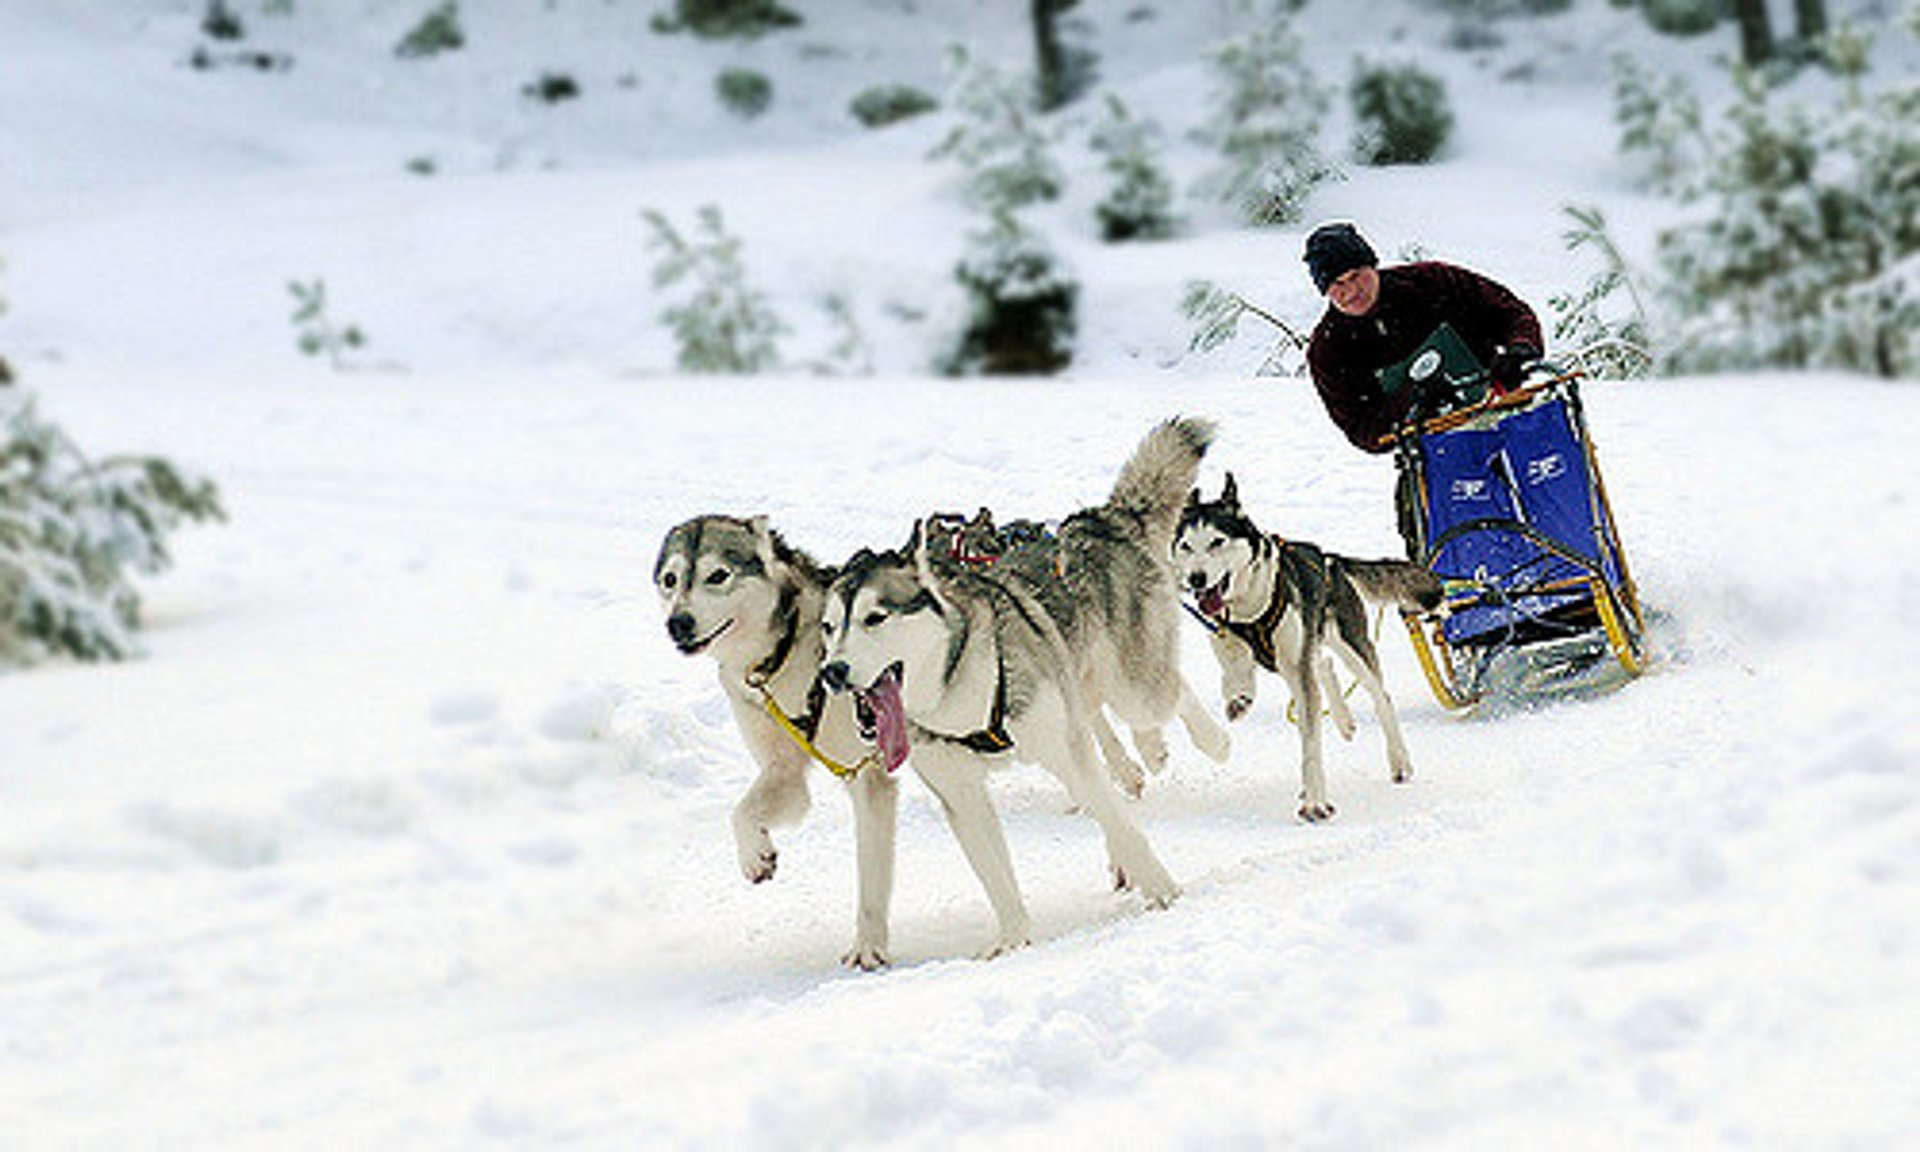 Dog Sledding in Scotland 2019 - Best Time